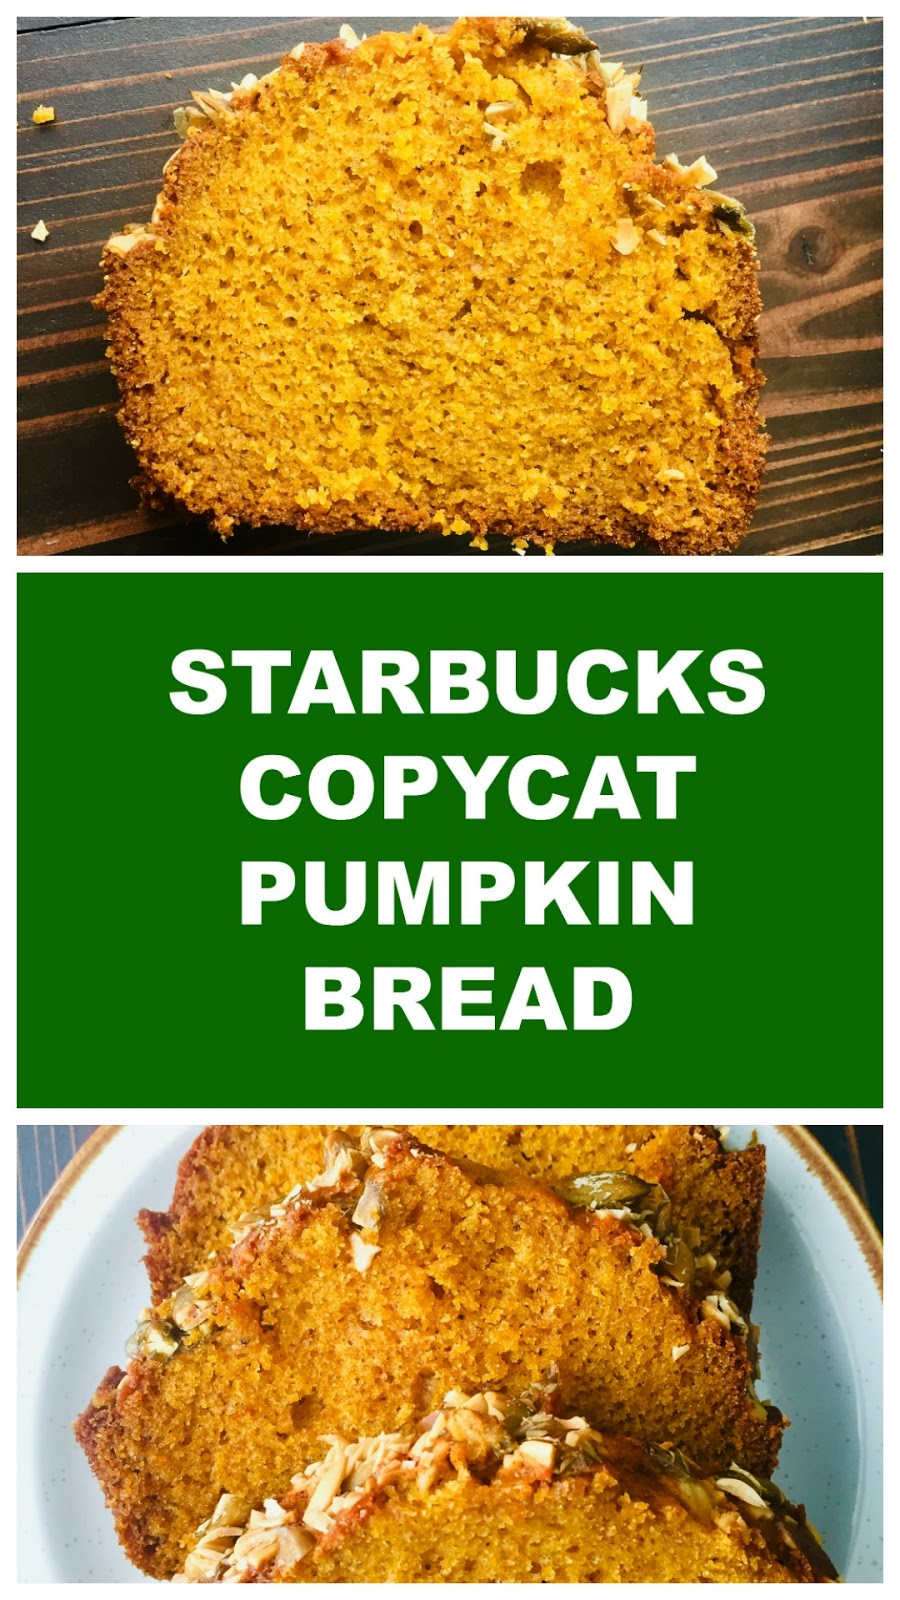 Moist pumpkin bread with just the right amount of spice just like Starbucks'!